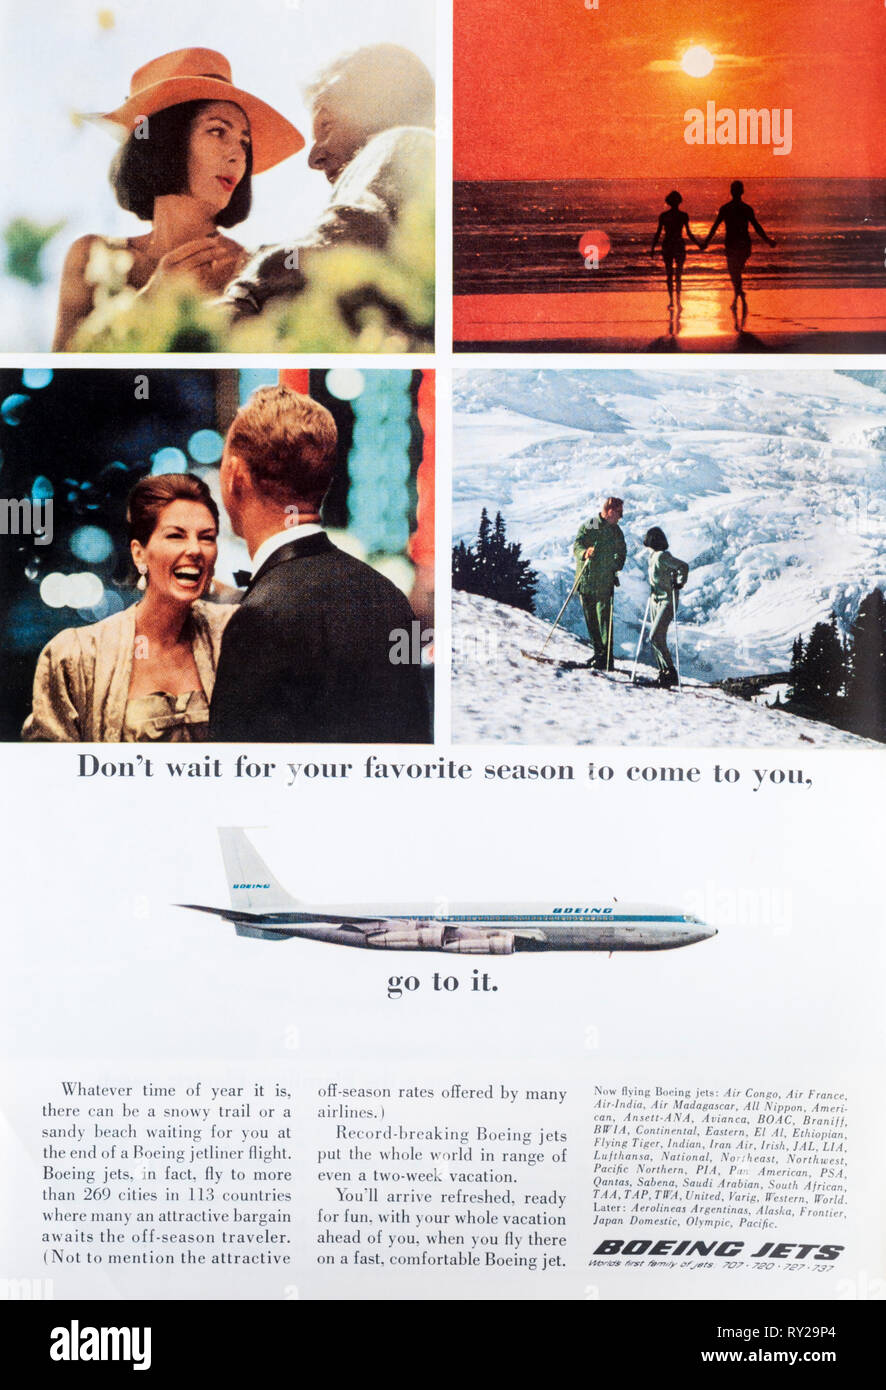 A 1965 magazine advert advertising Boeing jets. - Stock Image